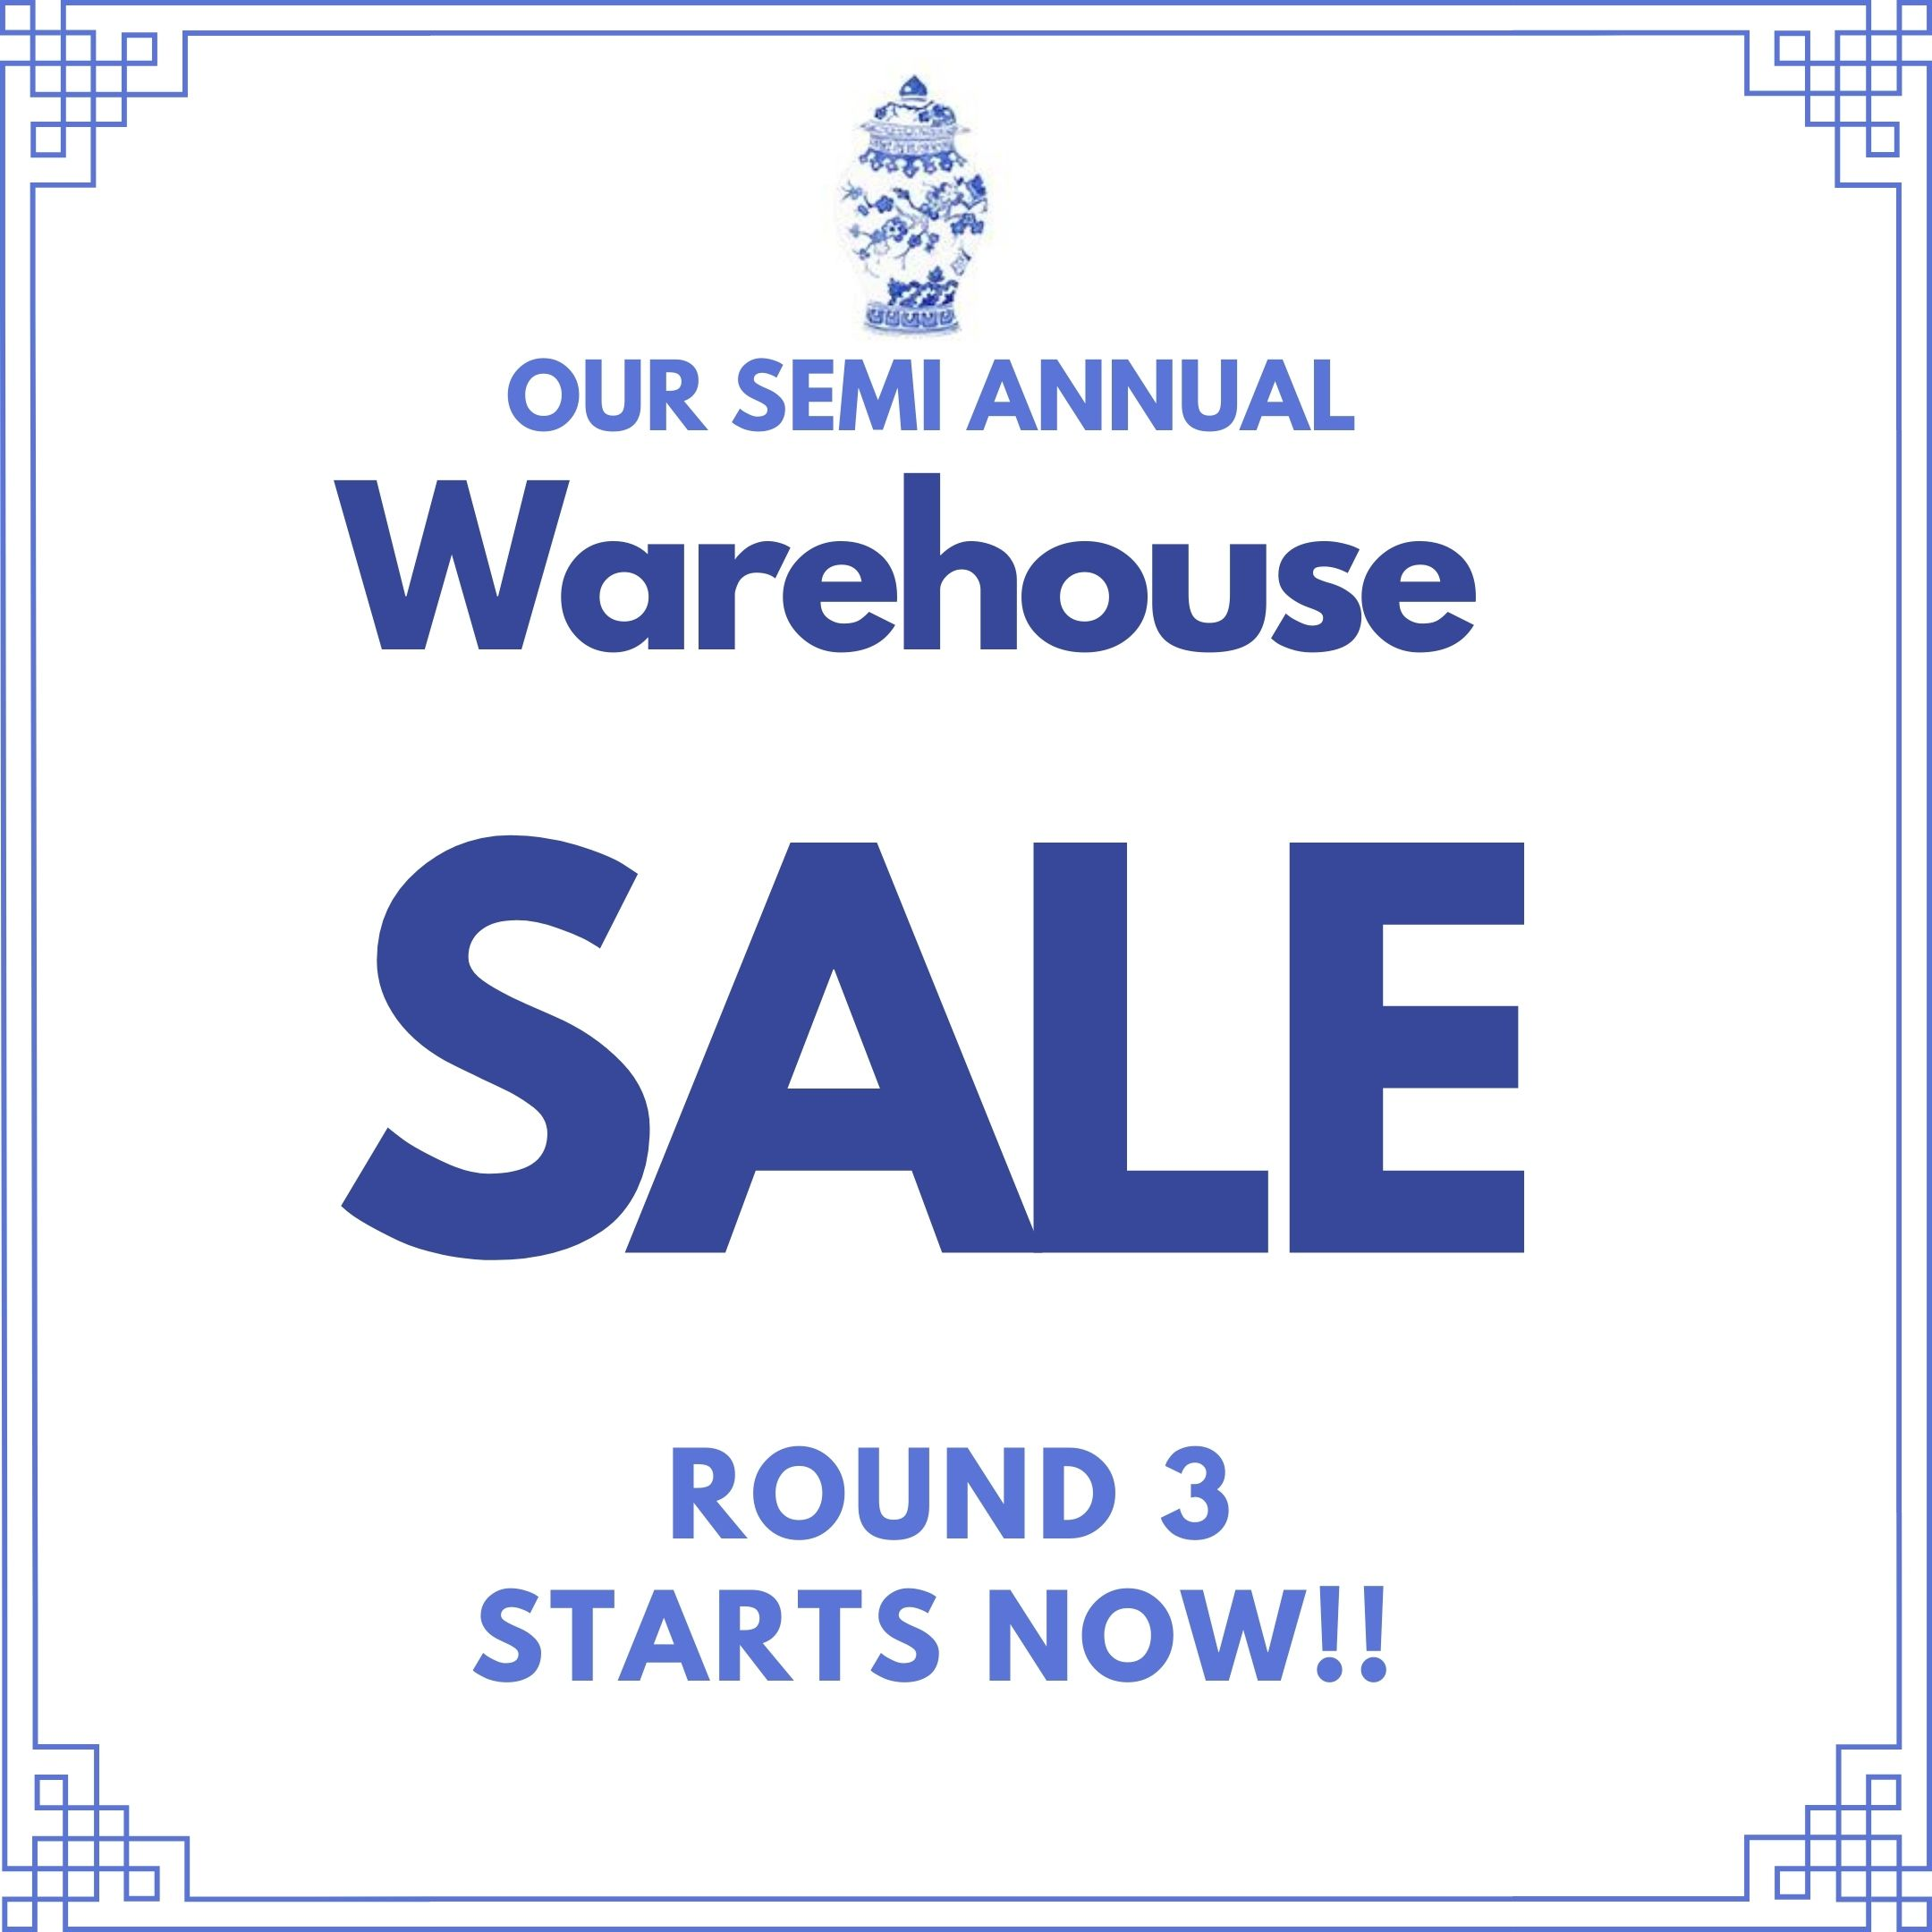 Our semi annual warehouse sale-part 3!